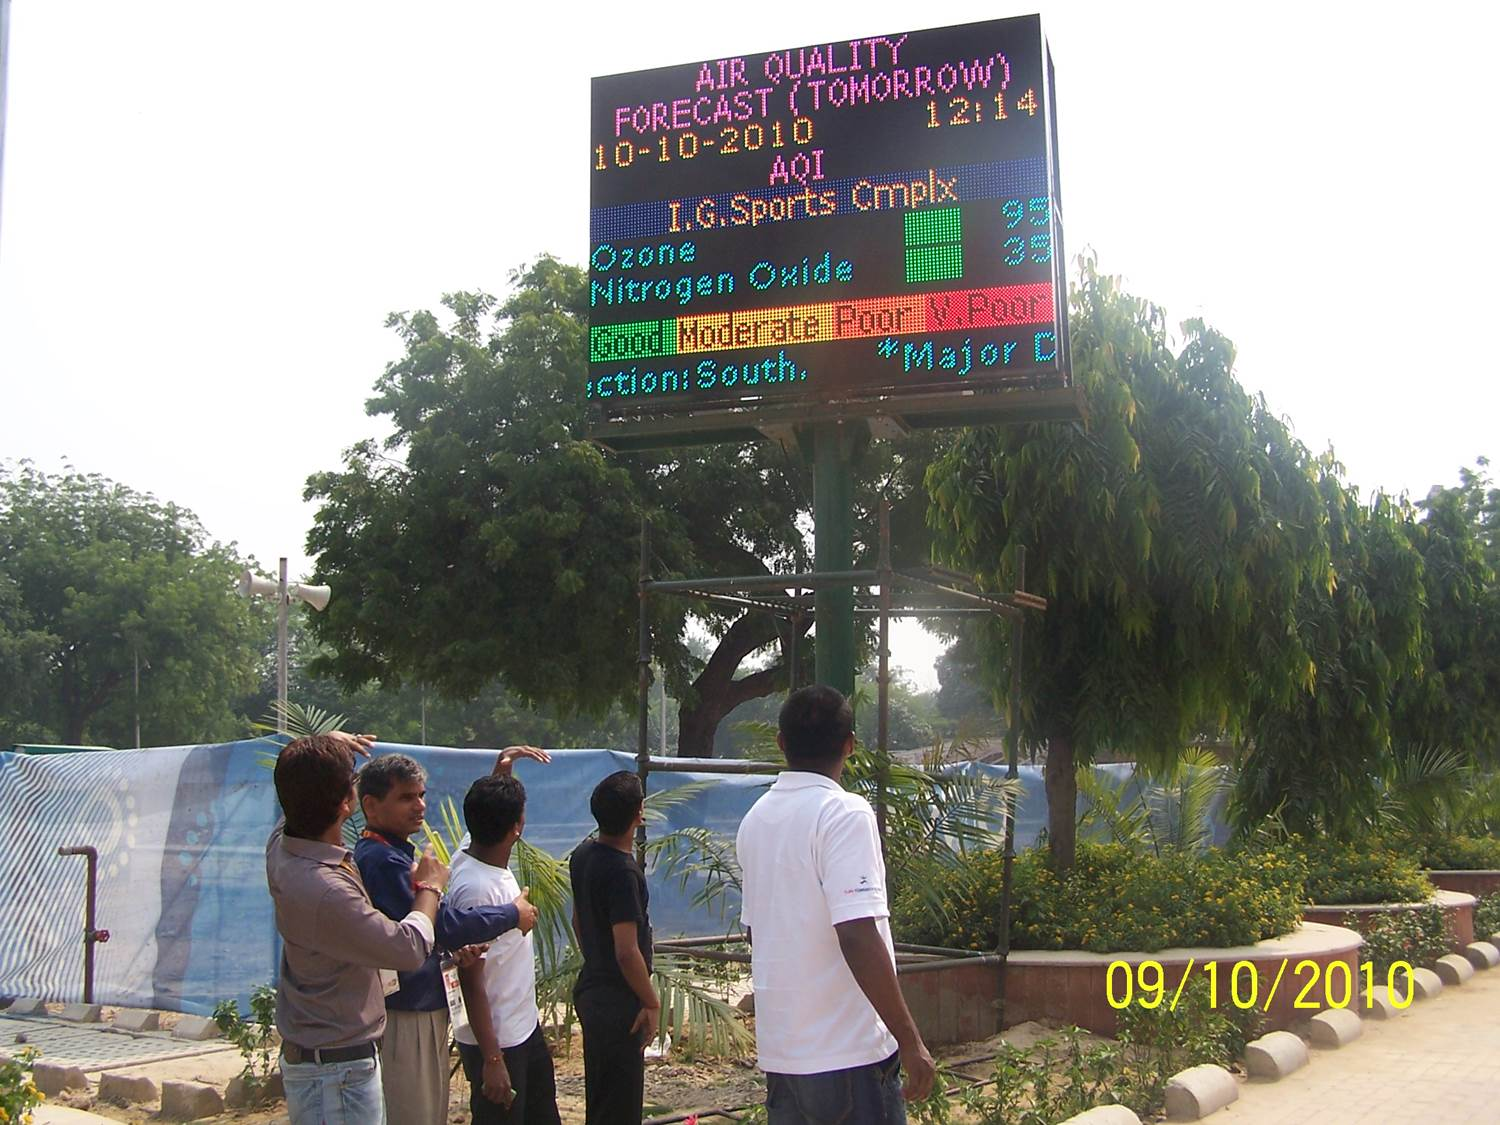 Live information panel showing air quality, with the SAFAR project supported by GURME